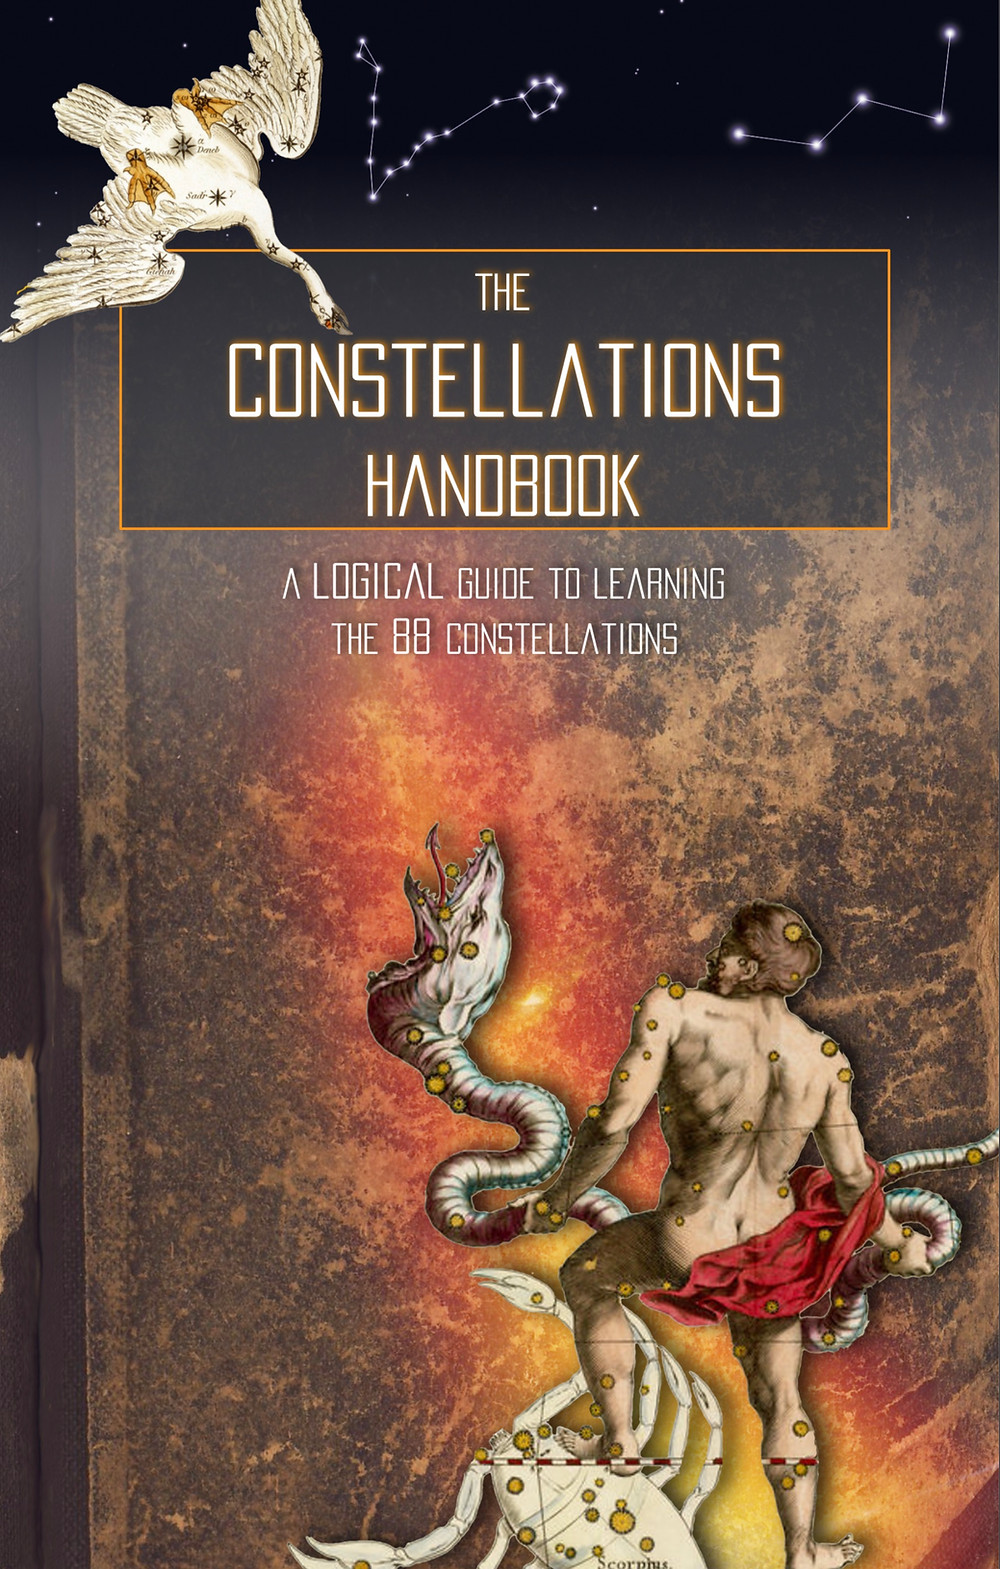 The Constellations Handbook - A Logical Guide to Learning the 88 Constellations